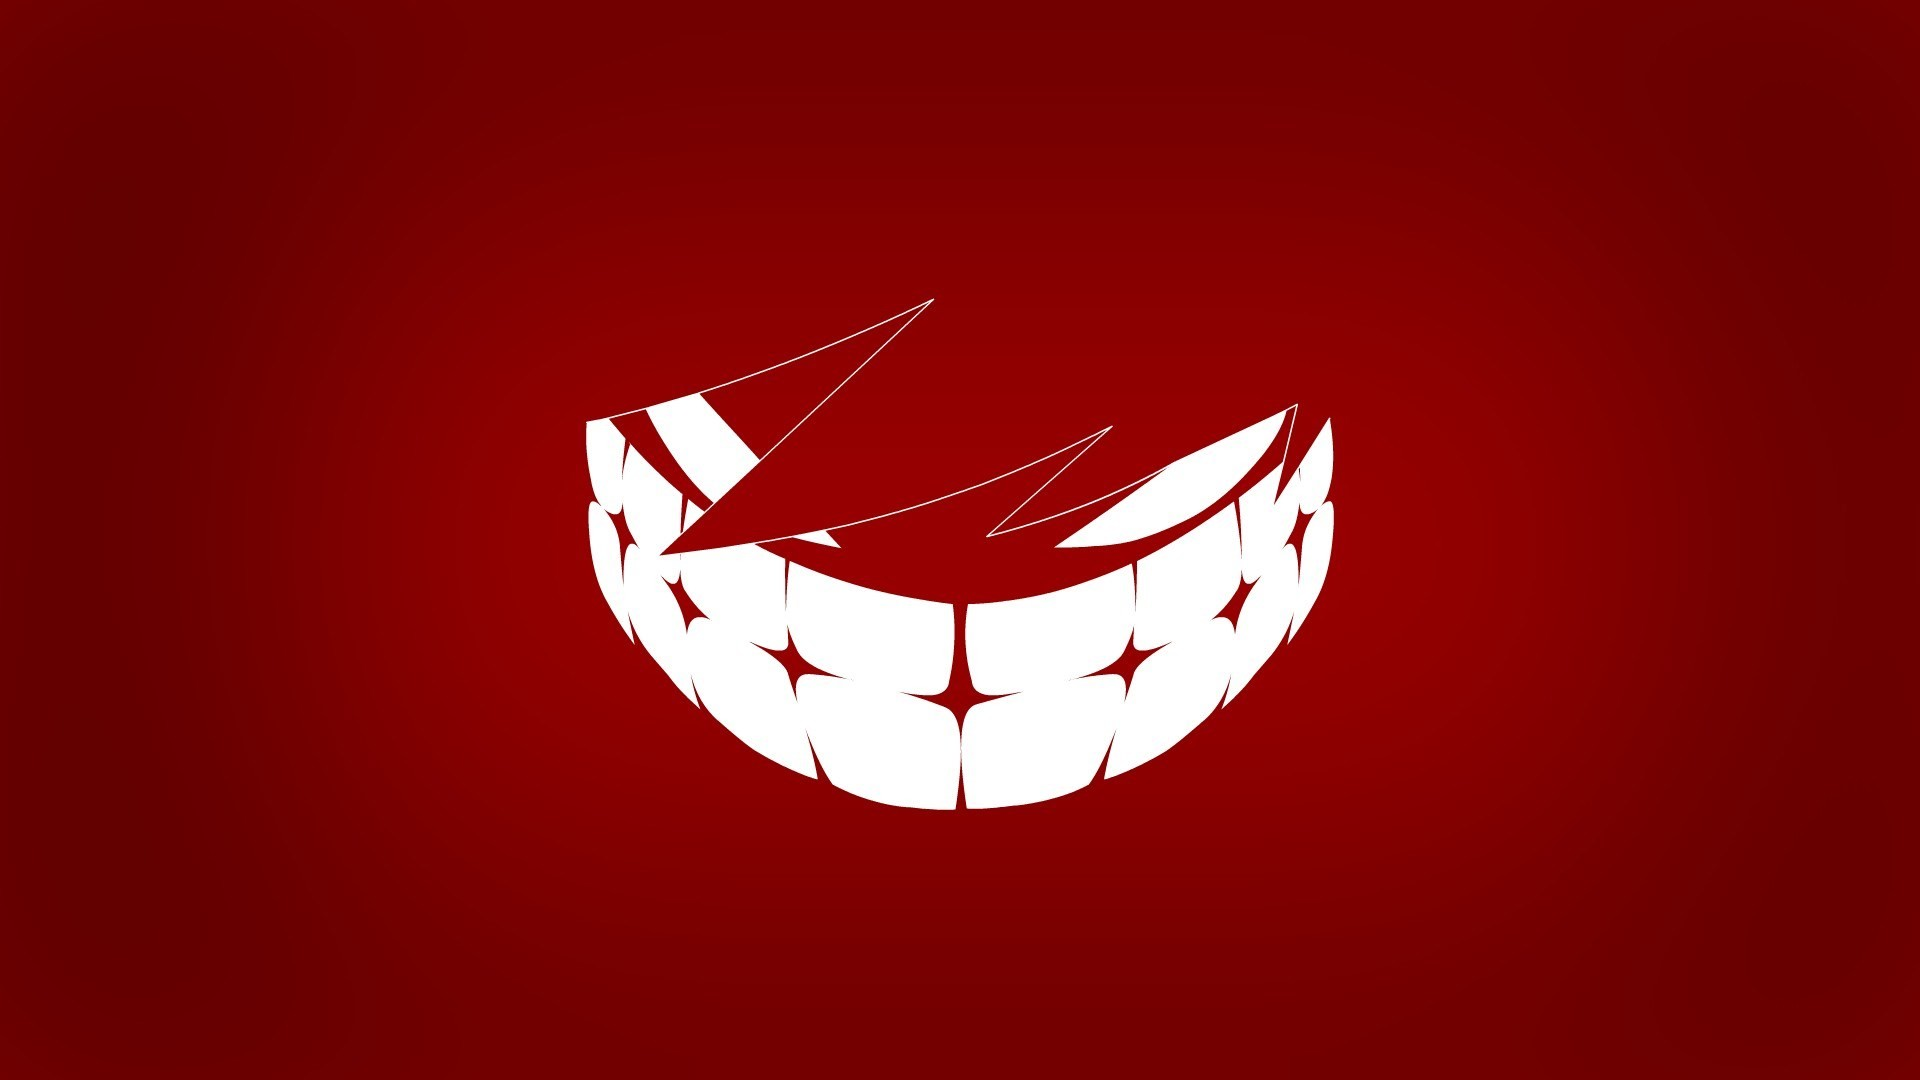 Res: 1920x1080, Art Smile Red